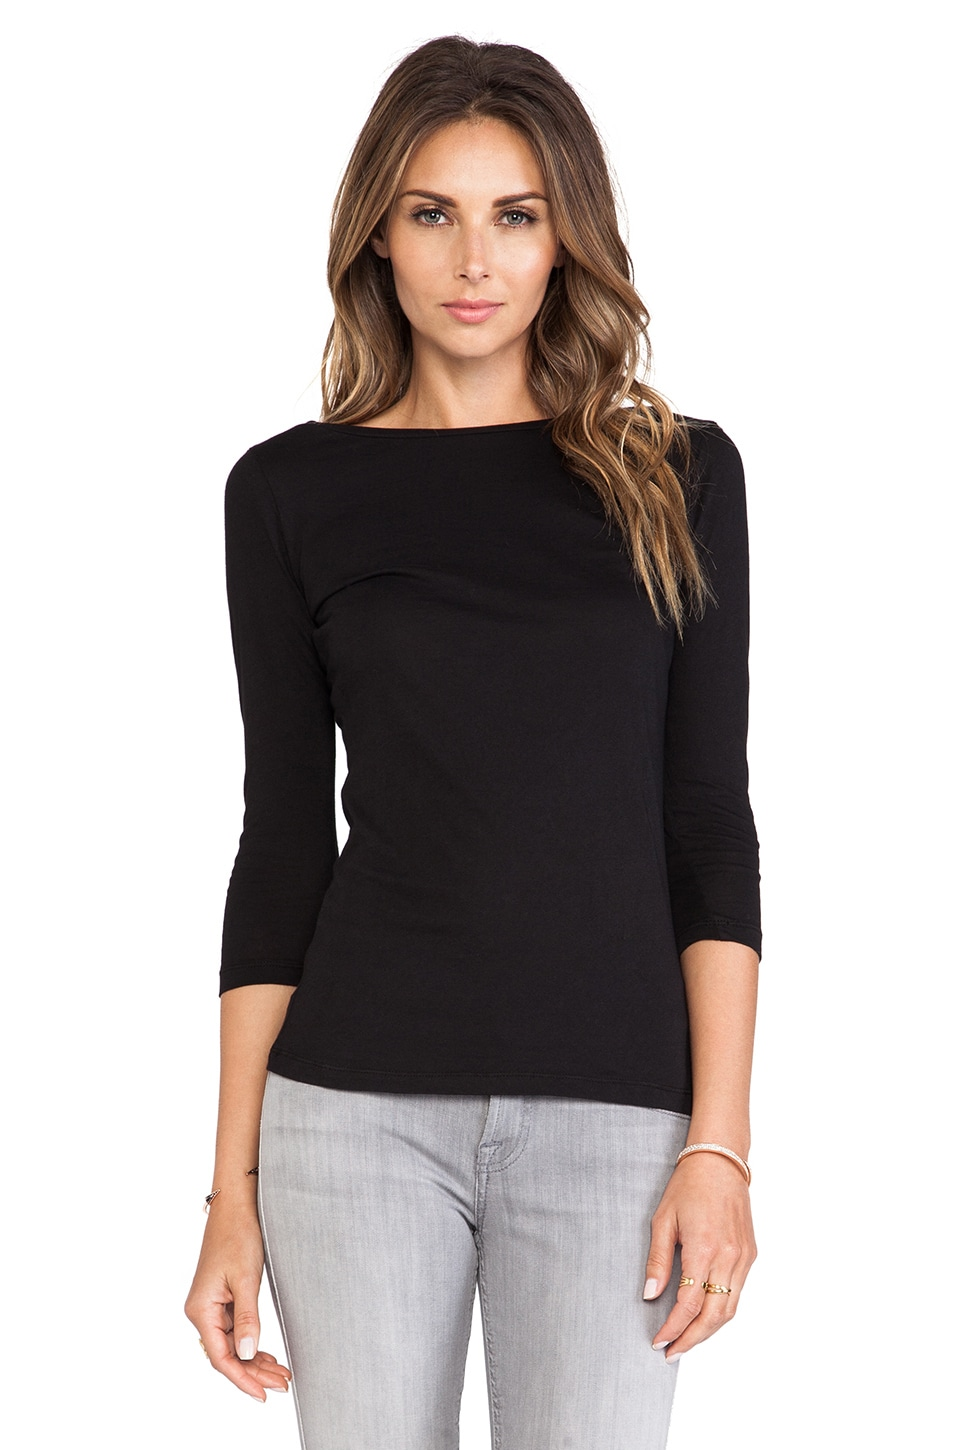 Bobi Light Weight Jersey 3/4 Sleeve in Black